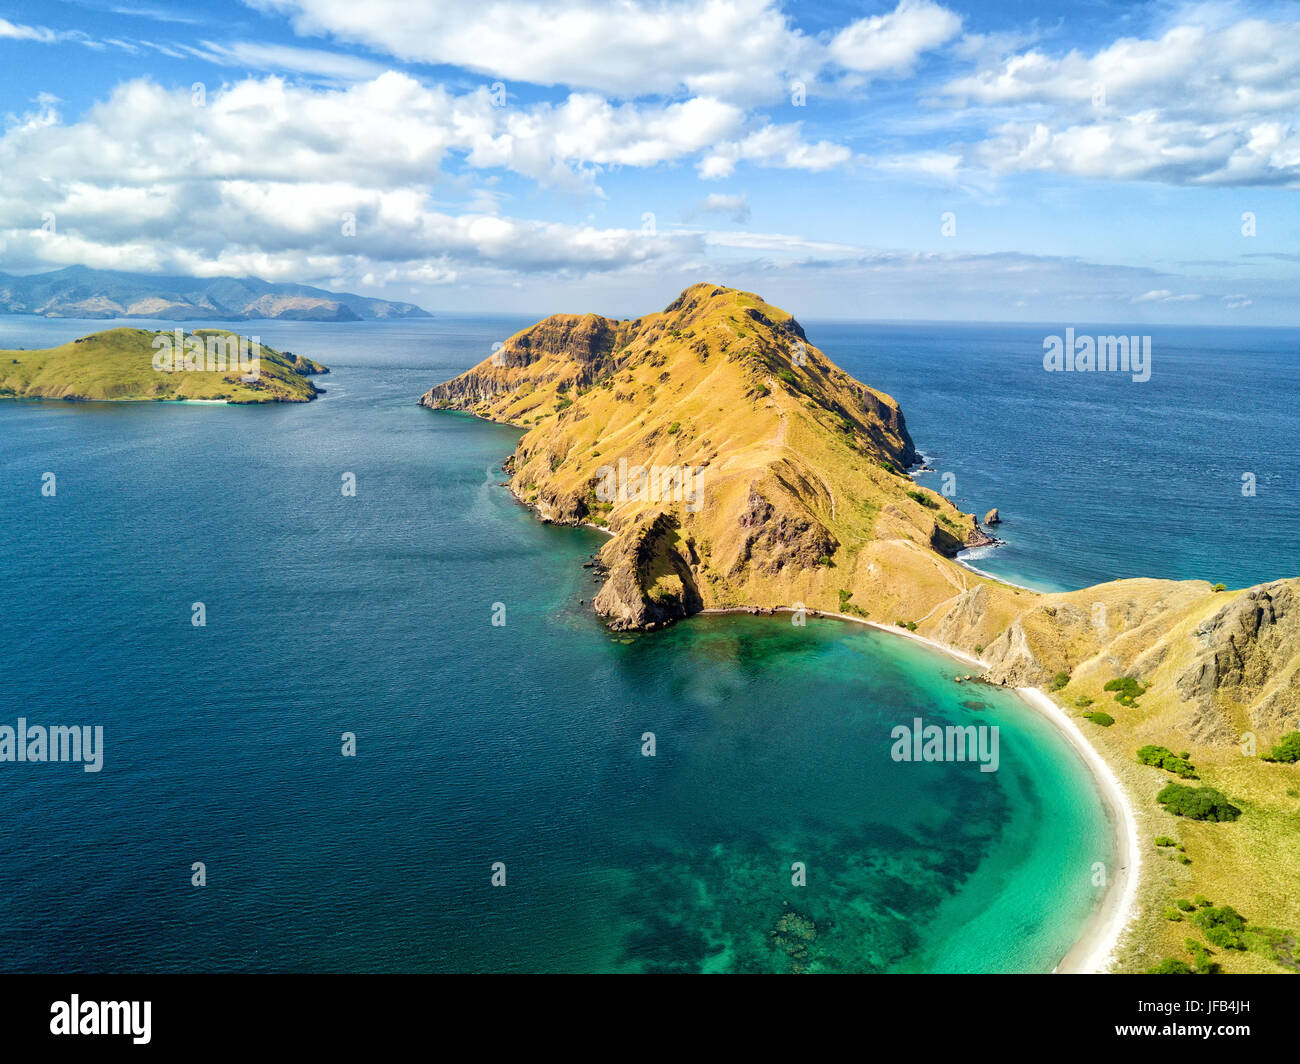 Aerial view of the southern tip of Pulau Padar island in between Komodo and Rinca Islands near Labuan Bajo in Indonesia. - Stock Image